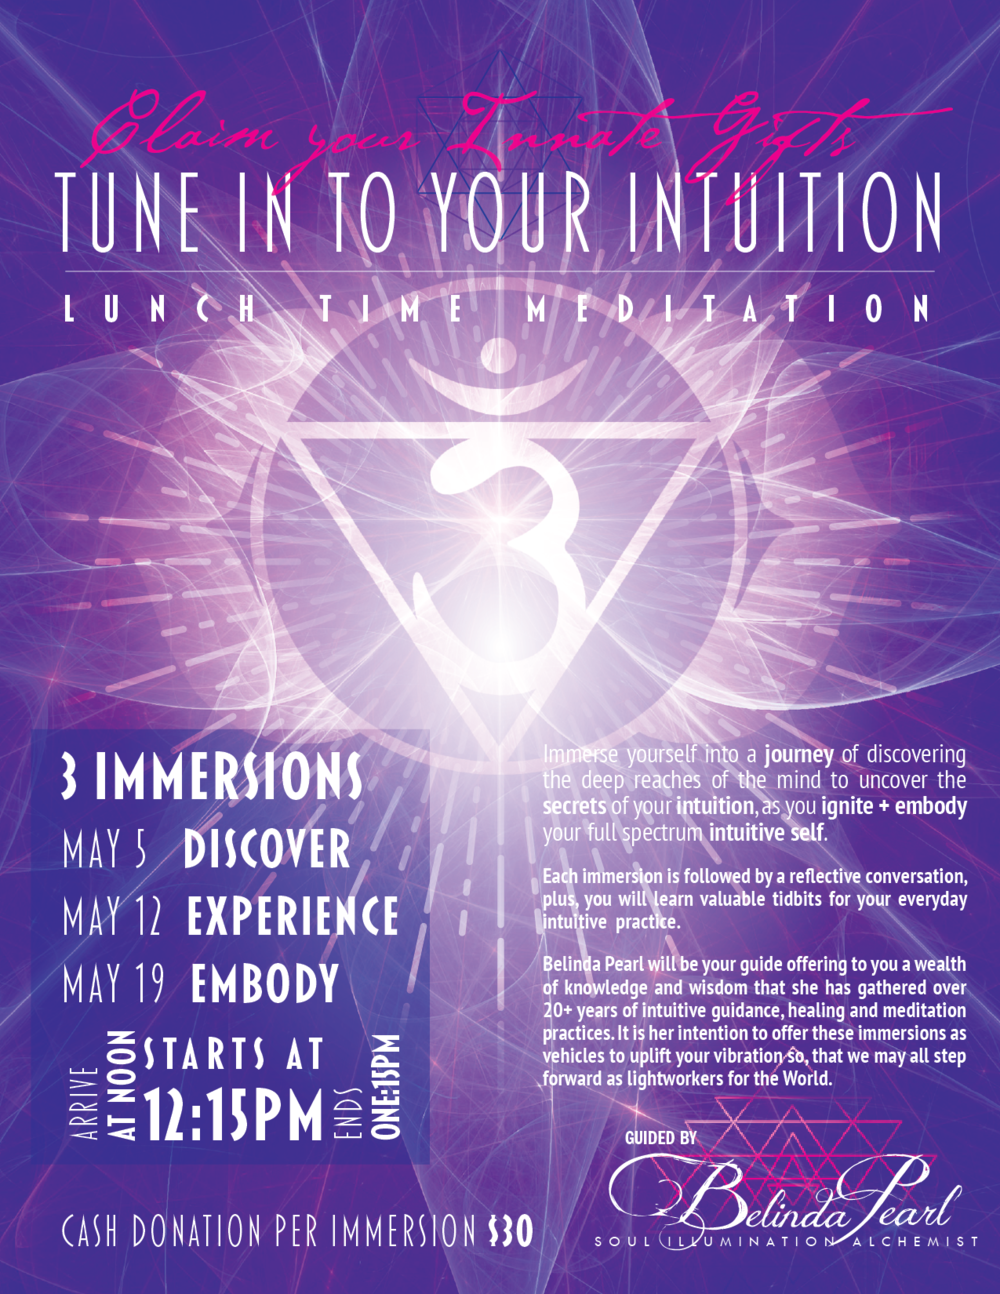 Tune in to your Intuition